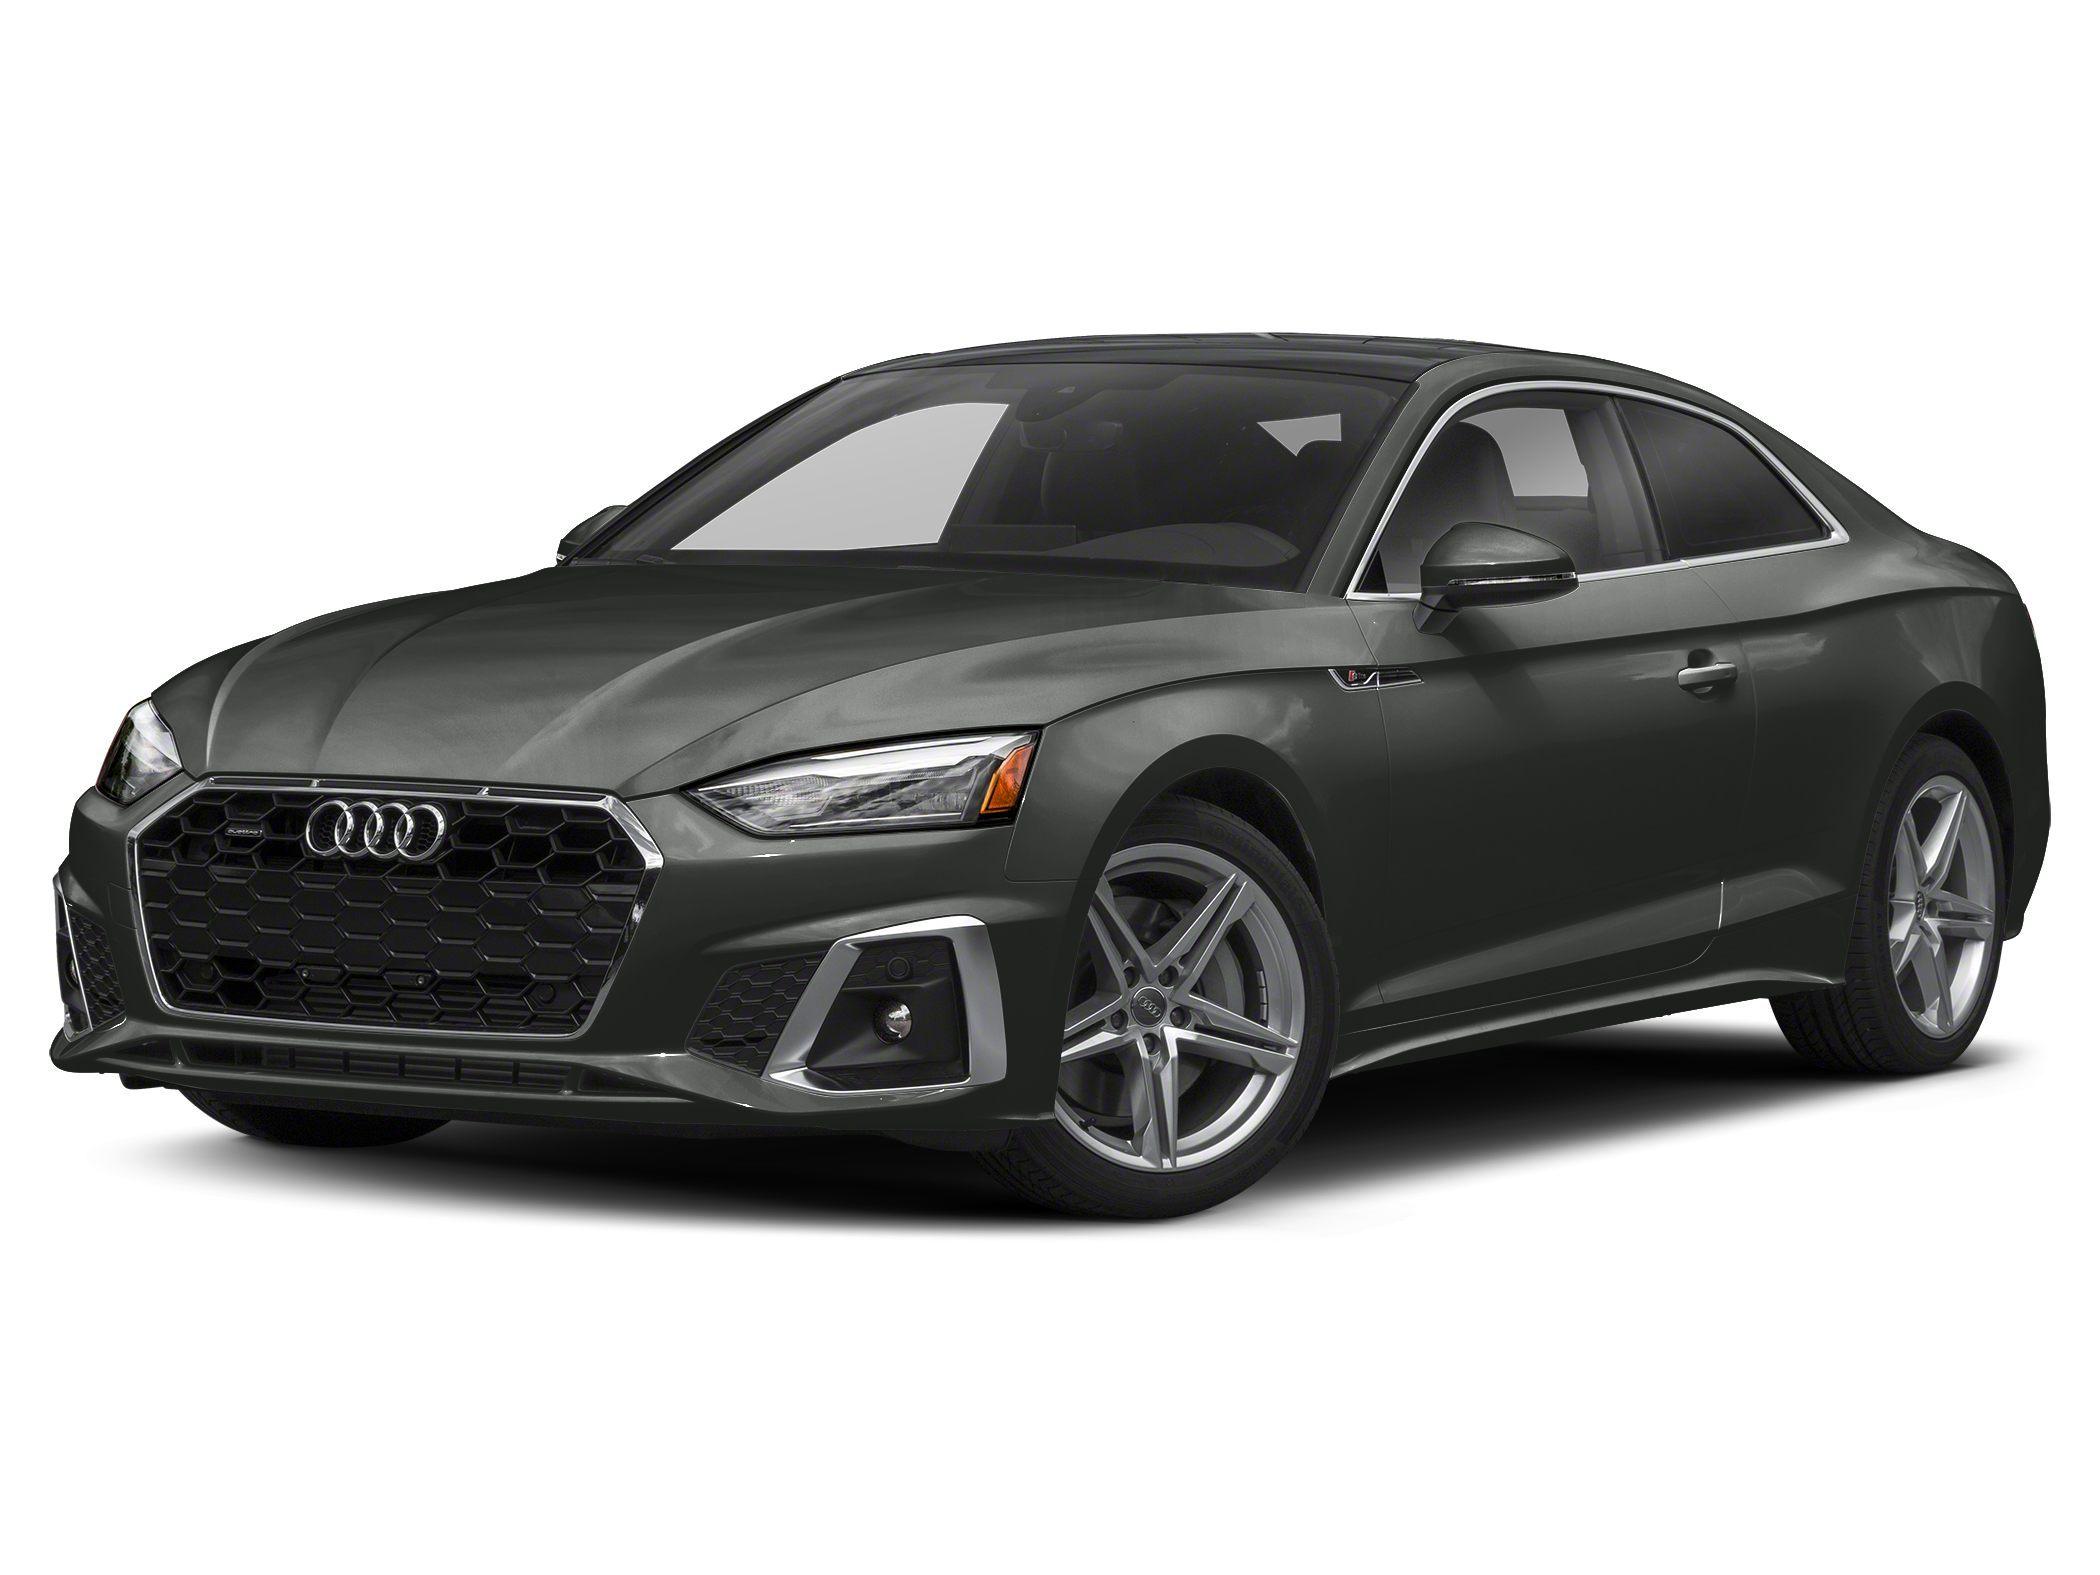 New Audi A5 For Sale Near Los Angeles 2017 2018 Audi A5 At Mckenna Audi